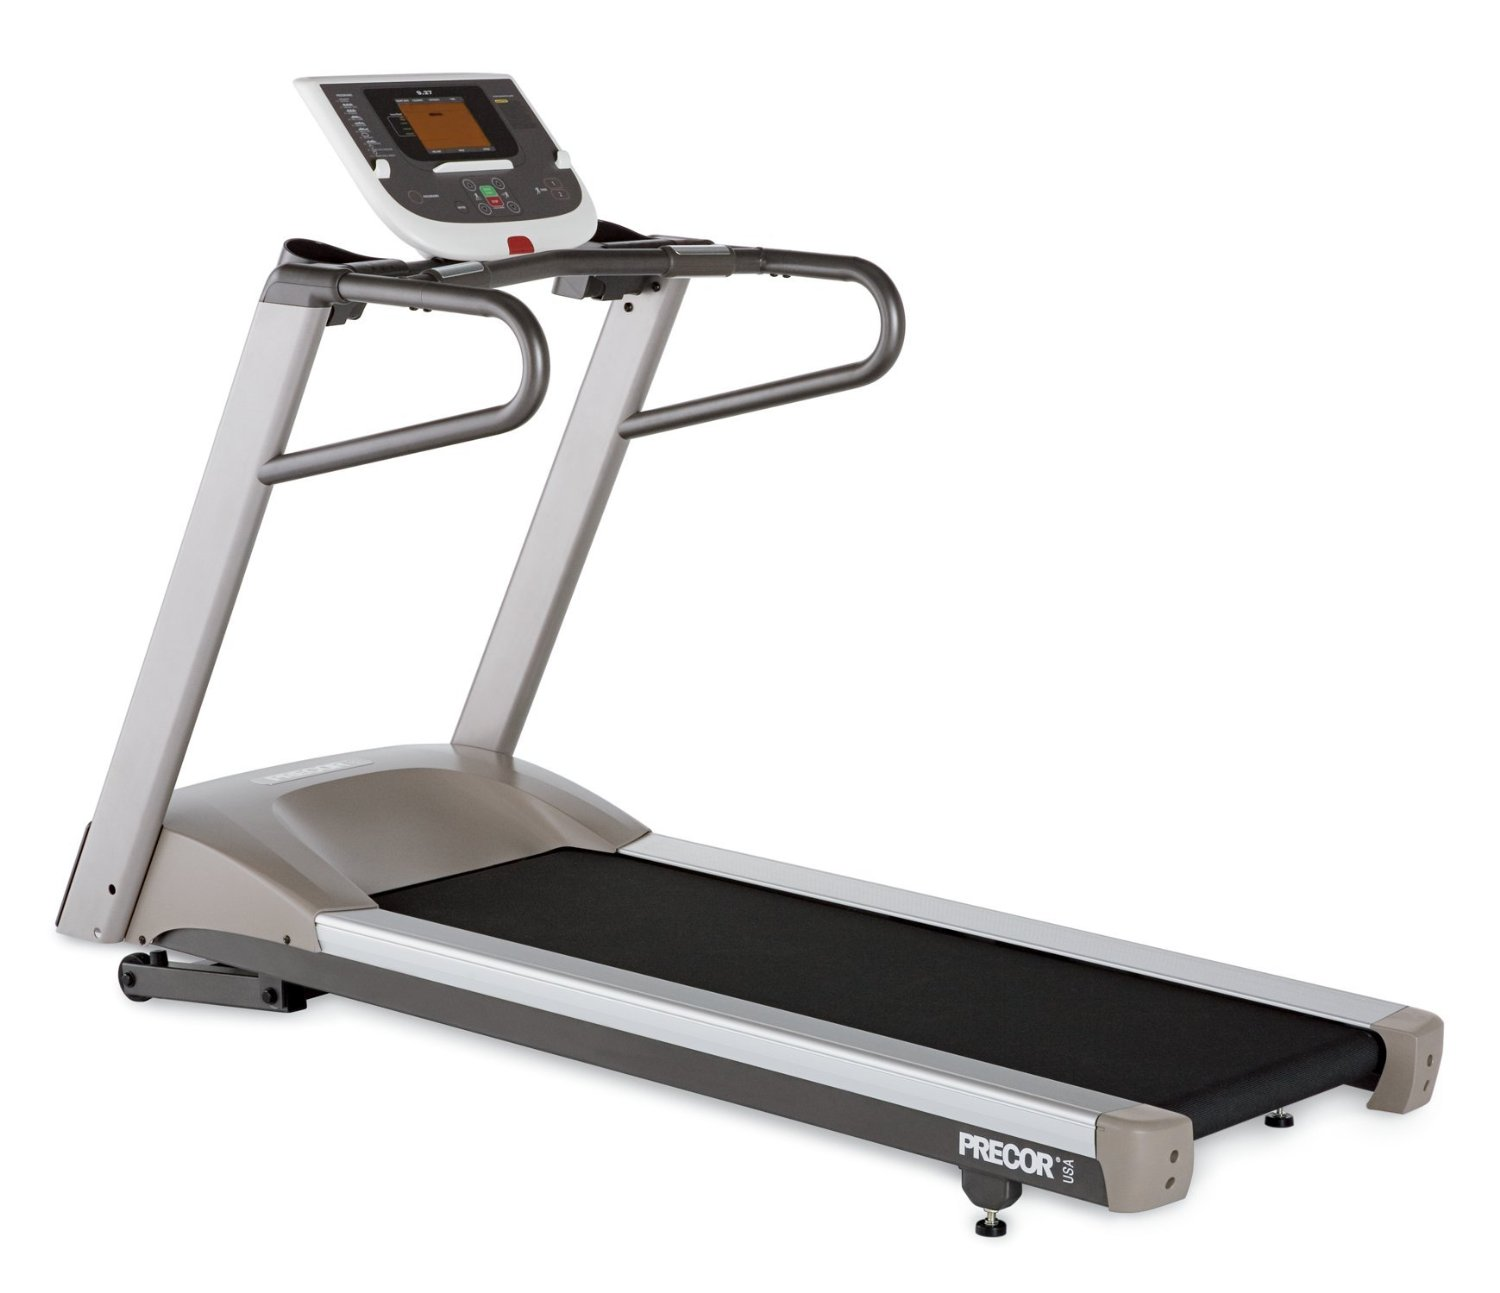 Is The Precor 9.27 A Good Buy?